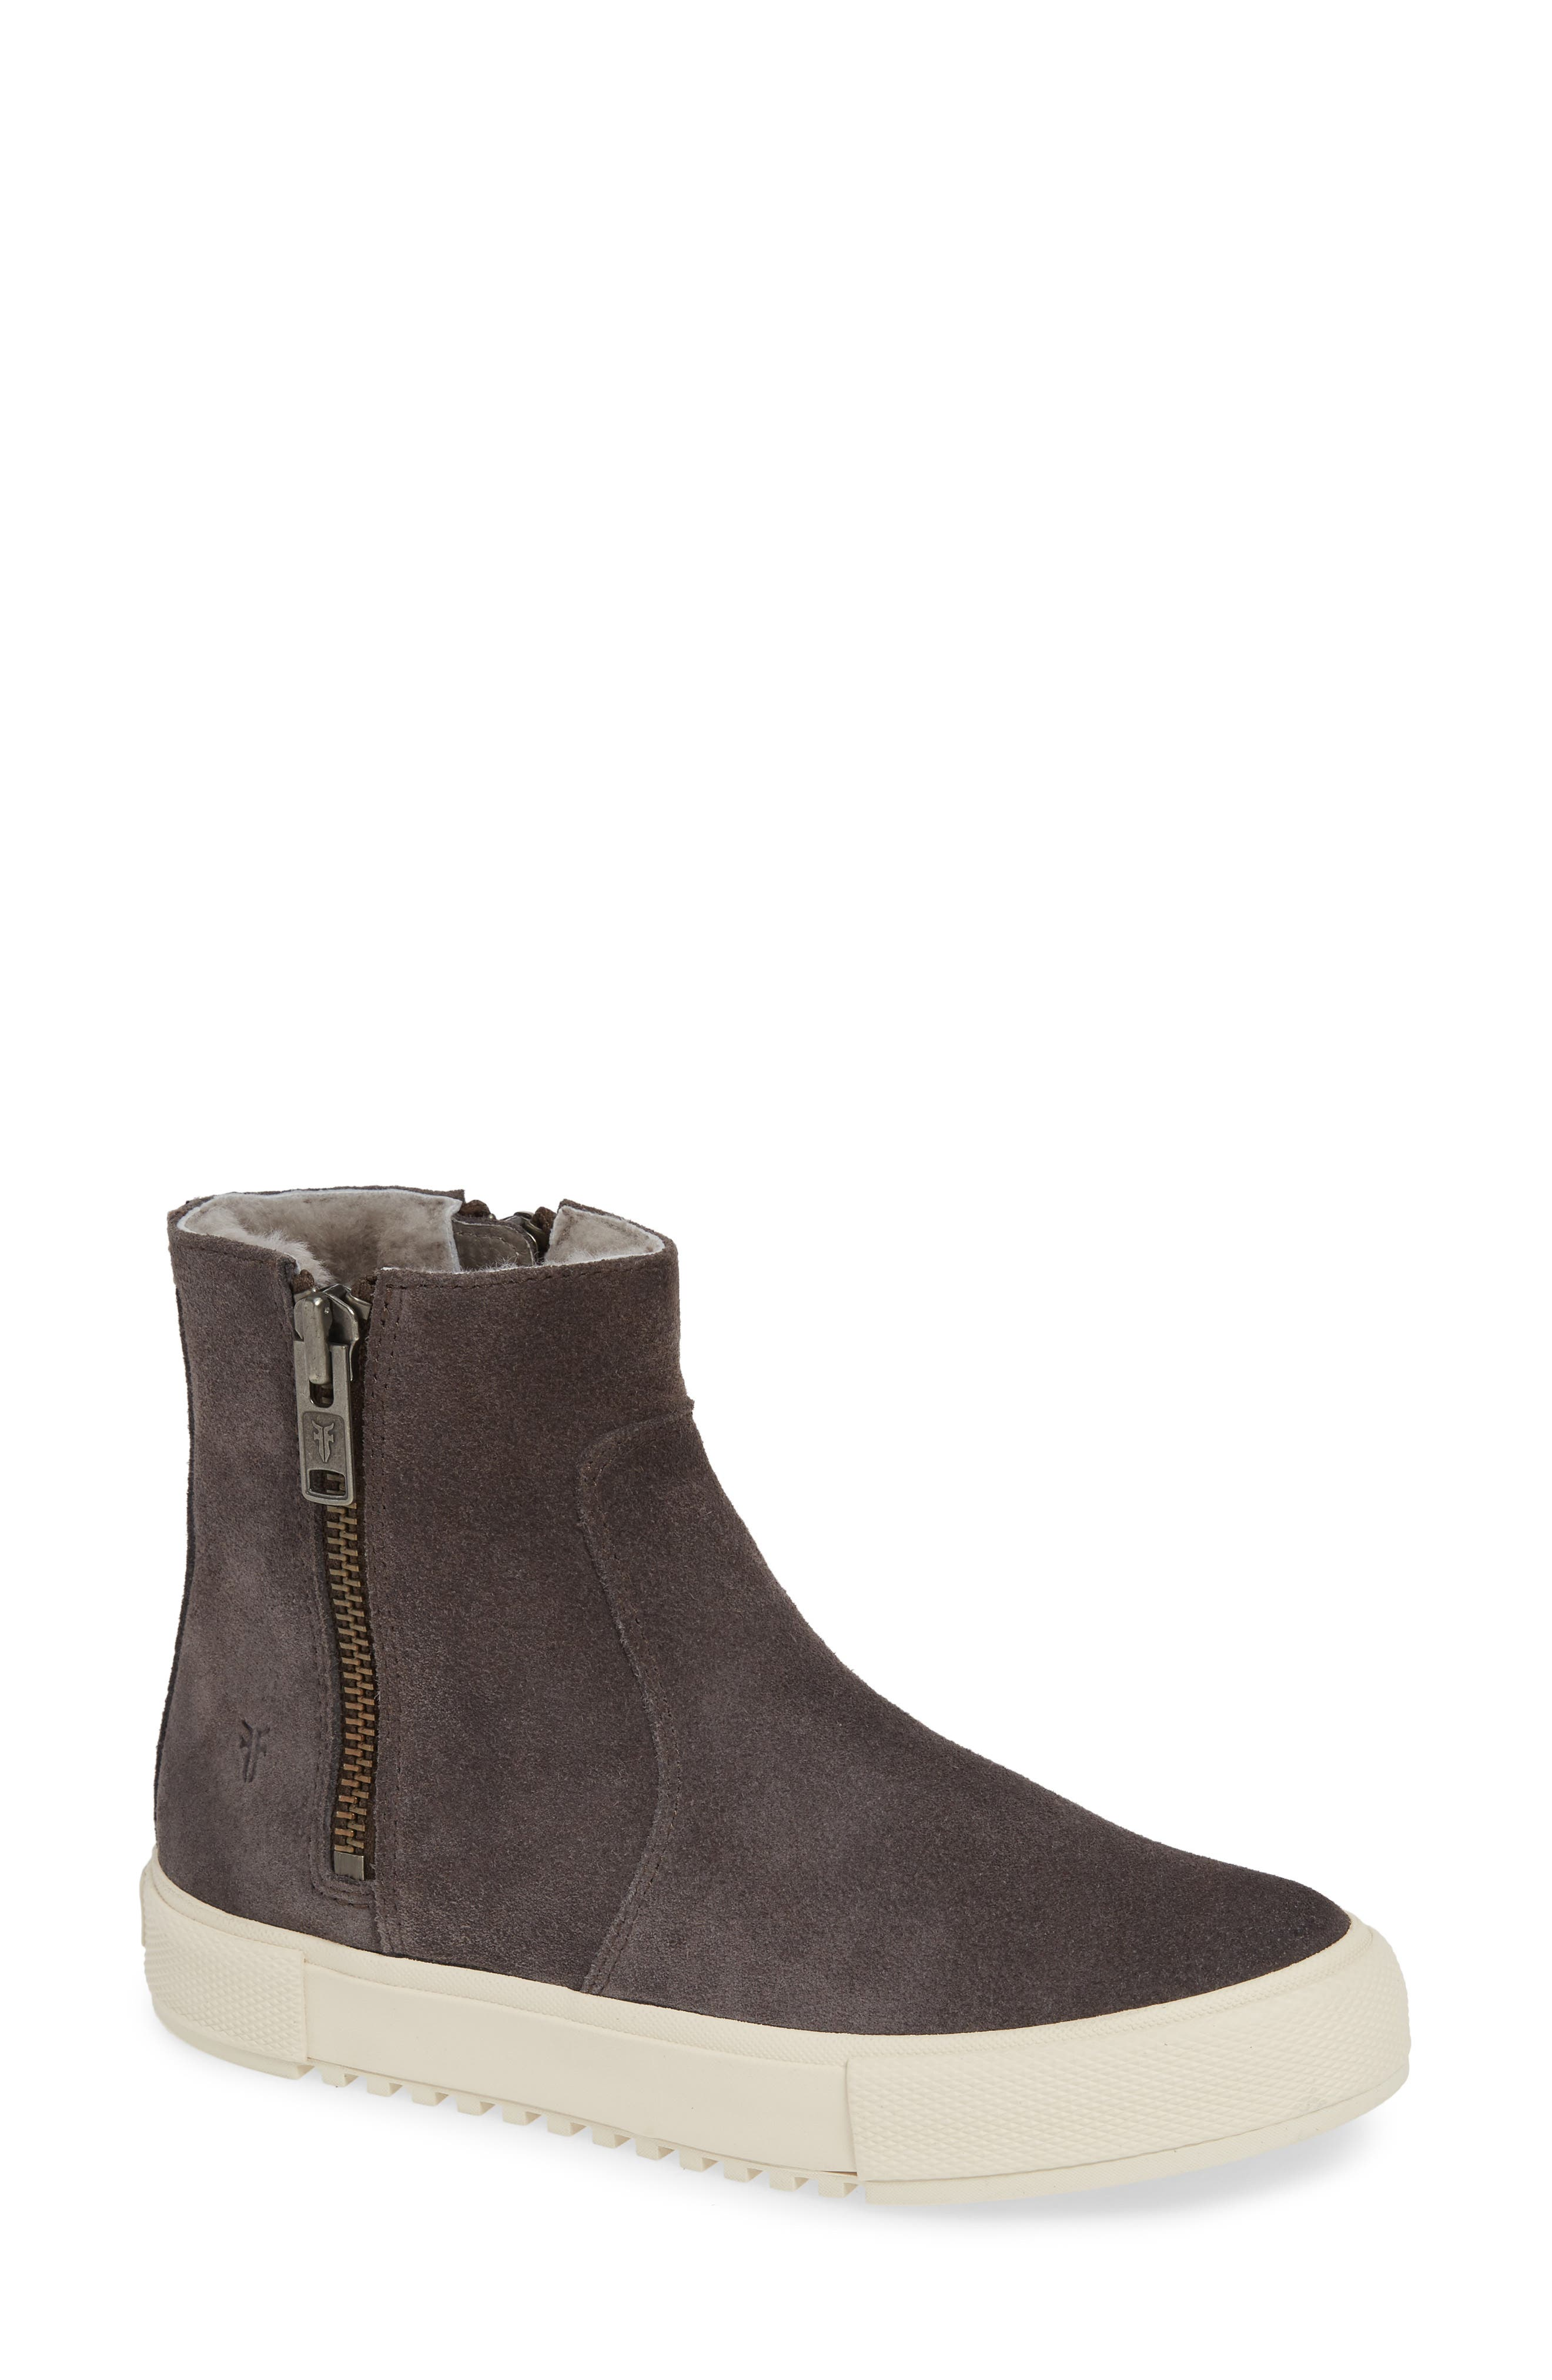 Frye Gia Genuine Shearling Lined Bootie, Grey